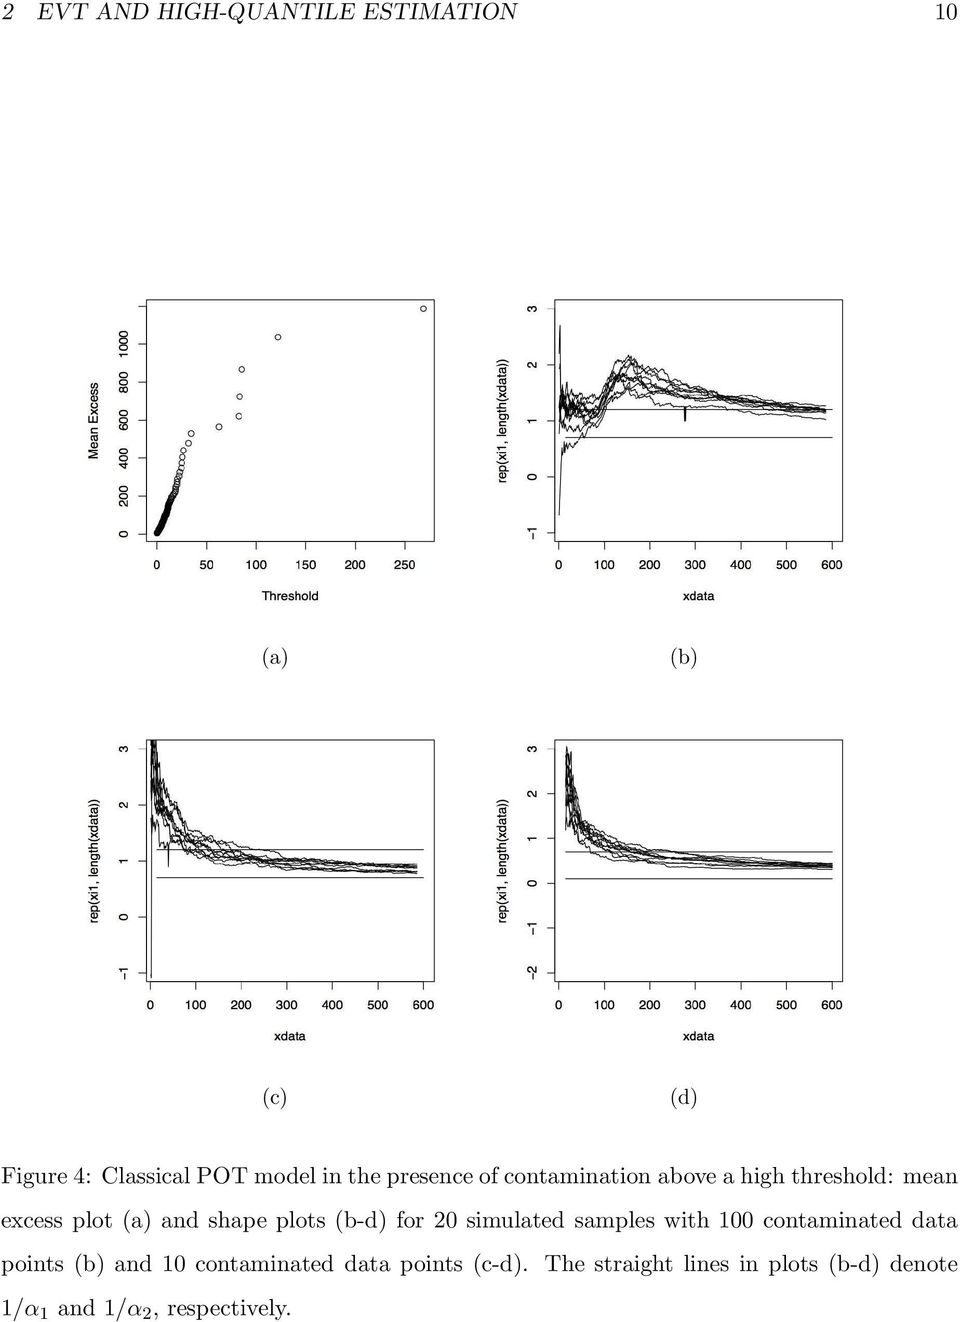 plots (b-d) for 20 simulated samples with 100 contaminated data points (b) and 10